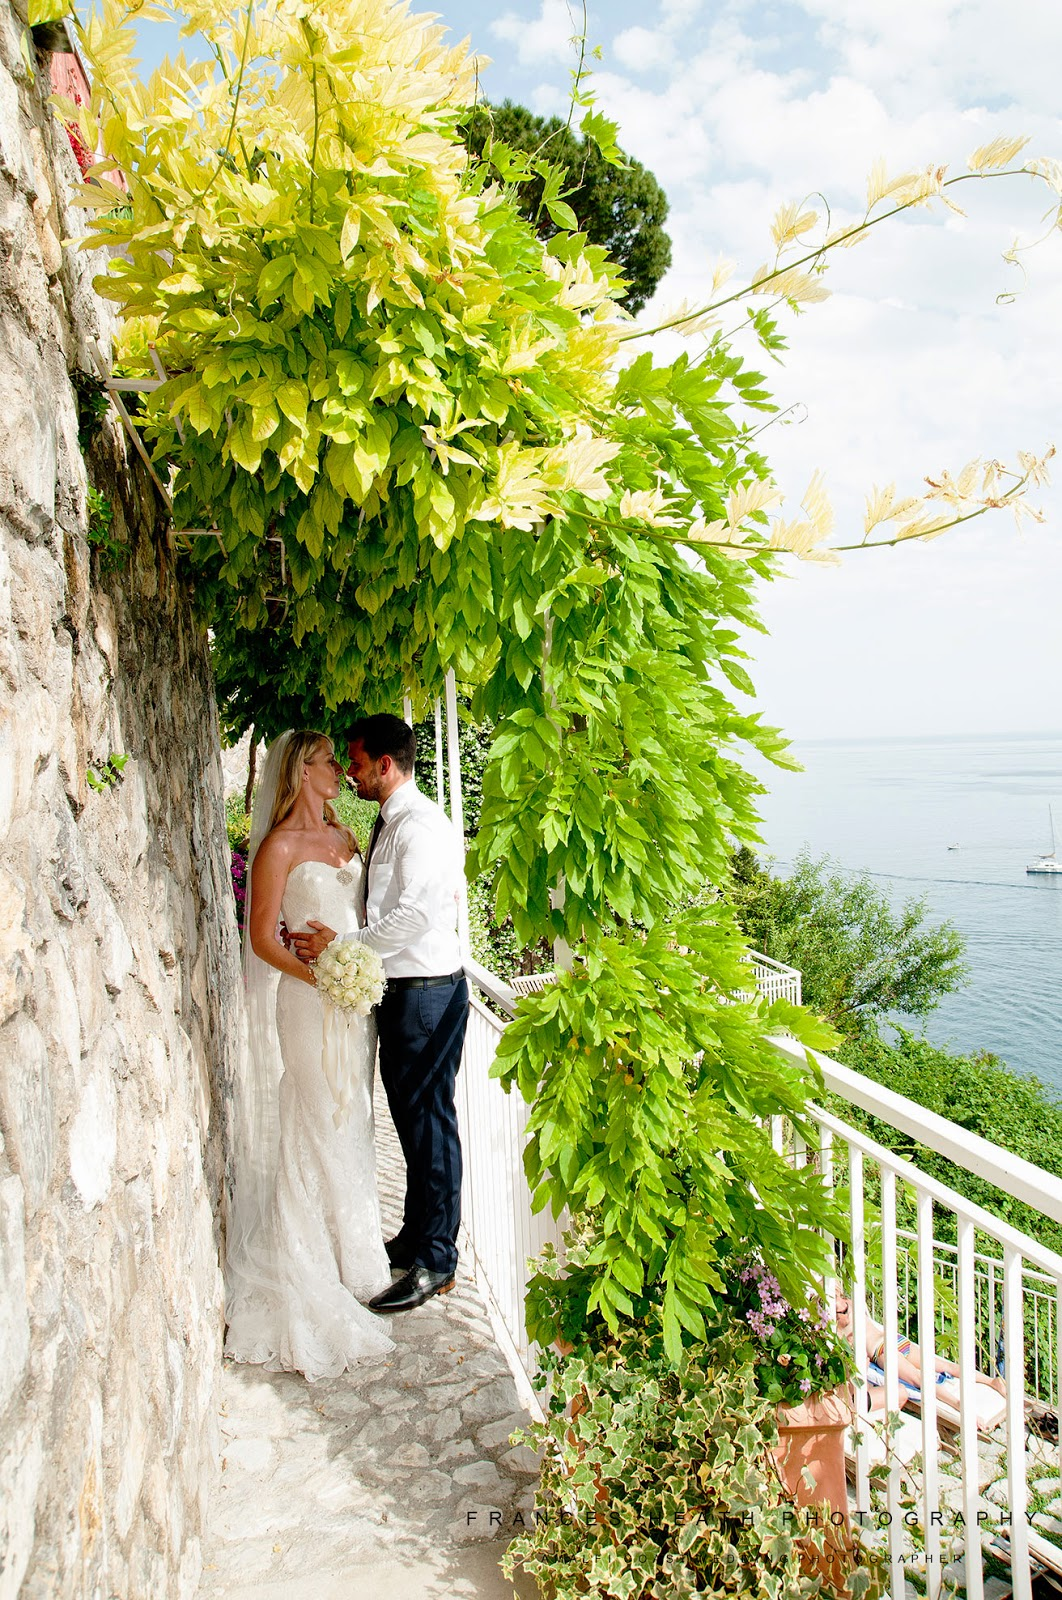 Wedding at Marincanto in Positano Italy